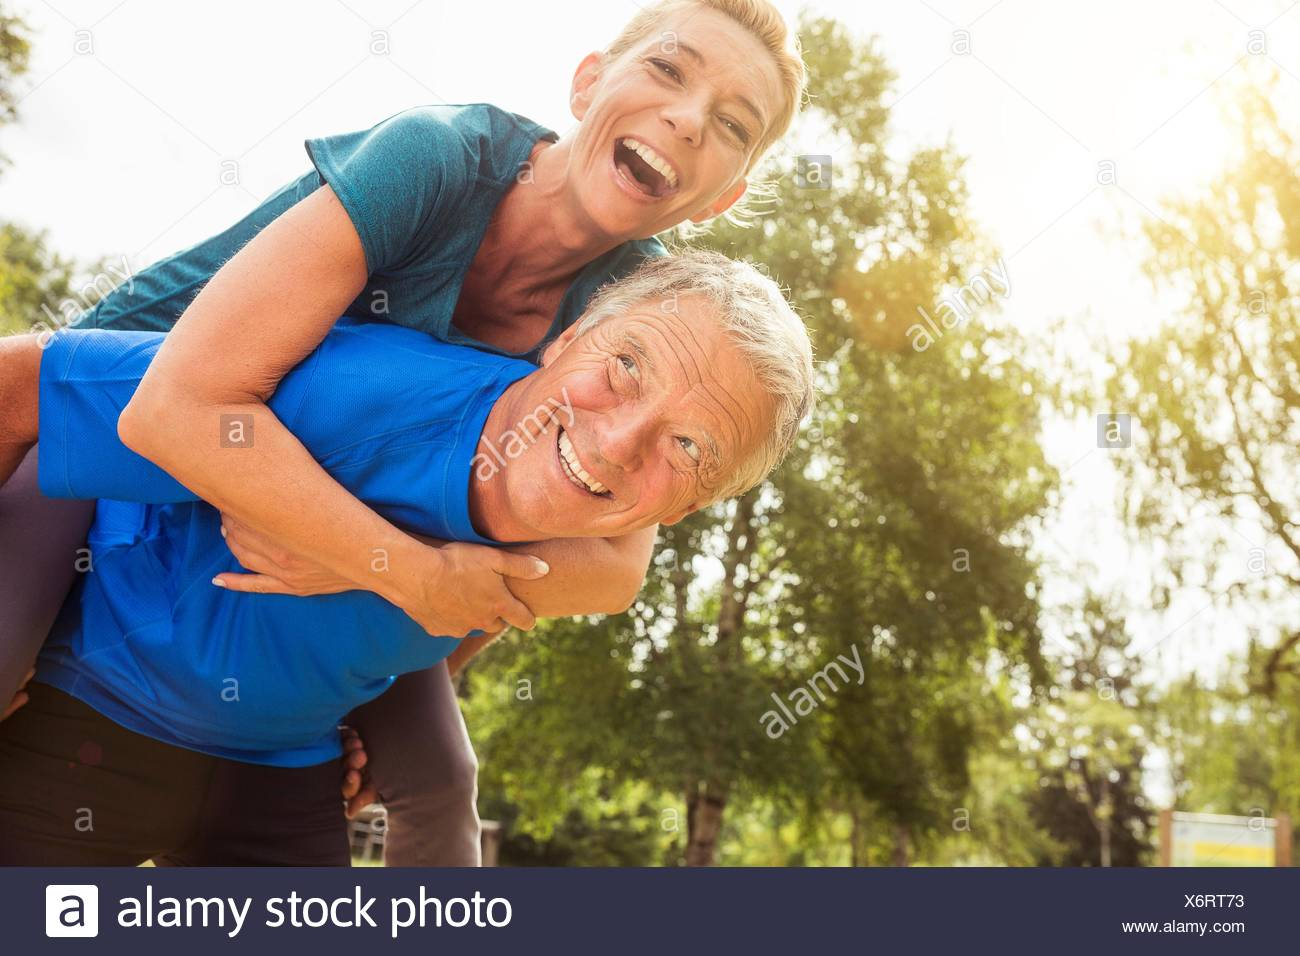 Senior man carrying mature woman on back, outdoors, laughing - Stock Image